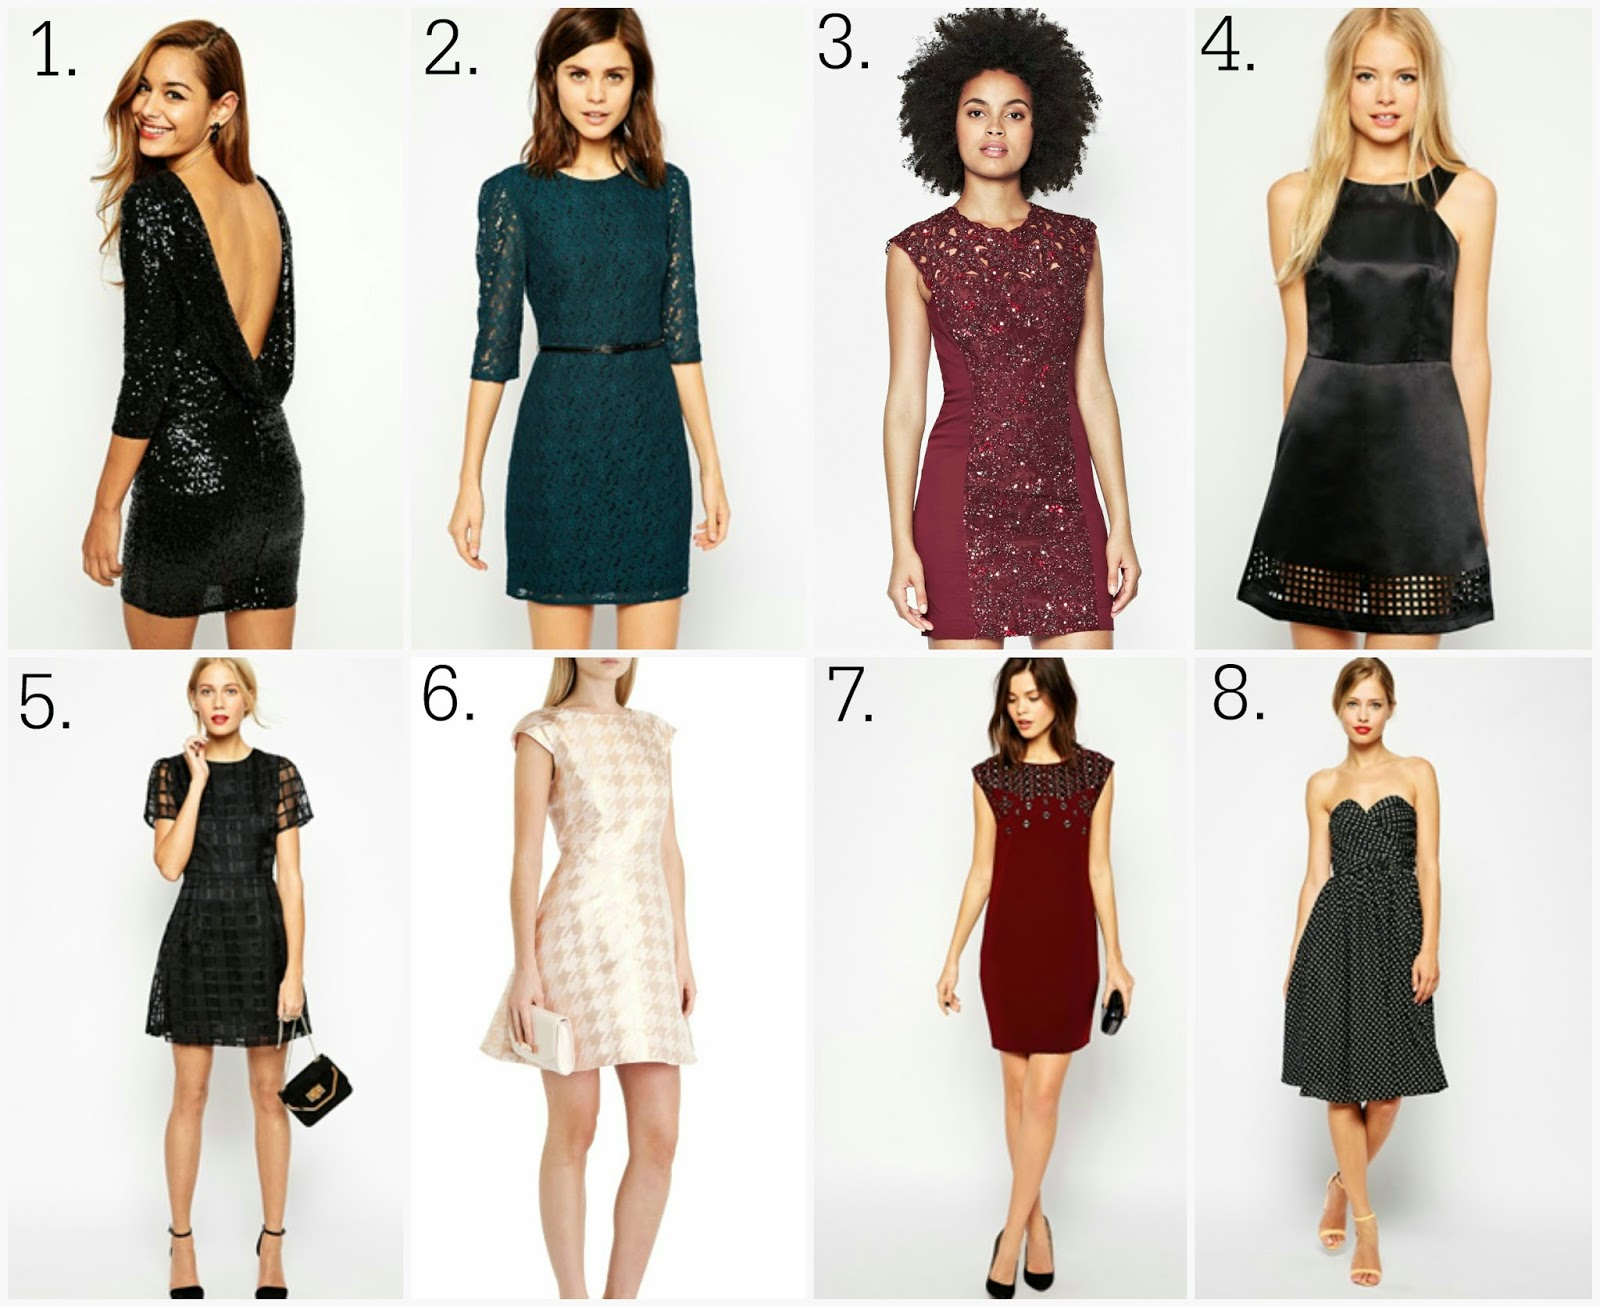 Christmas Party Outfits.Christmas Party Dresses 2014 Lux Life London